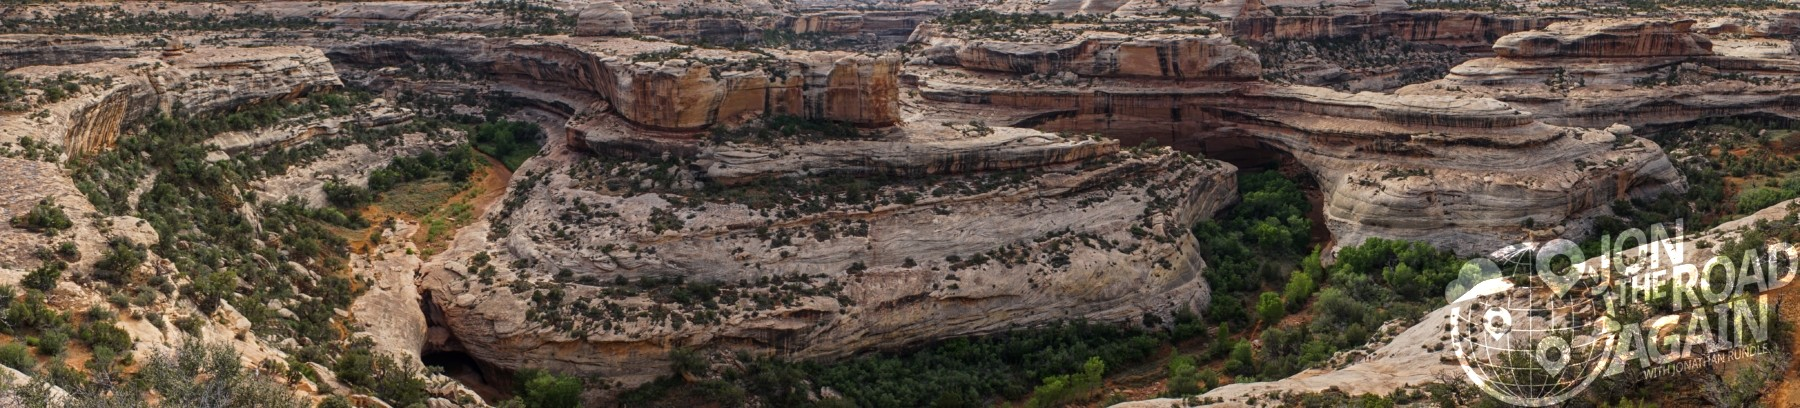 Natural Bridges National Monument Panorama